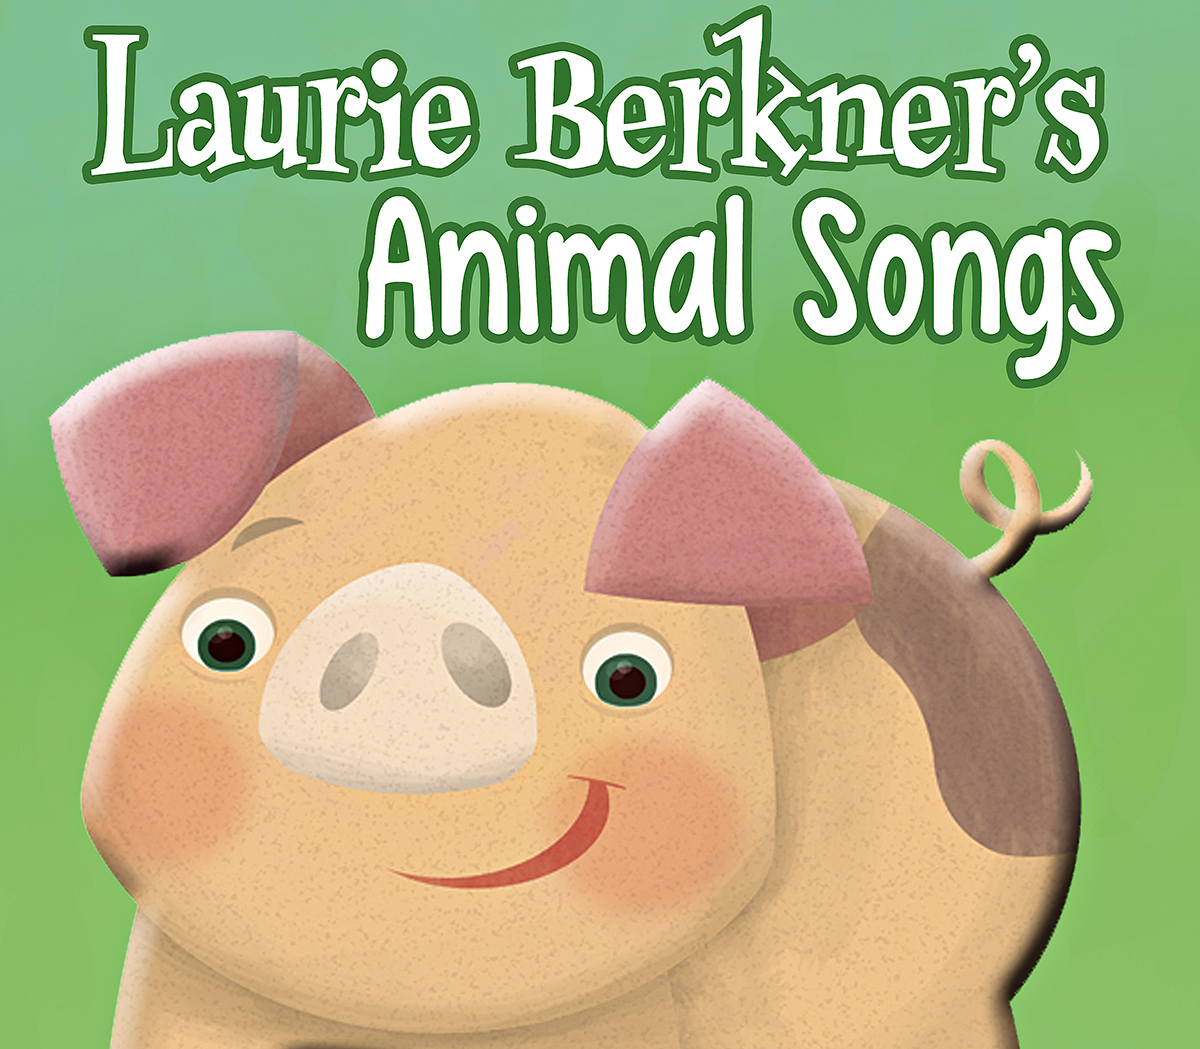 The Laurie Berkner Band Animal Songs Cover Art